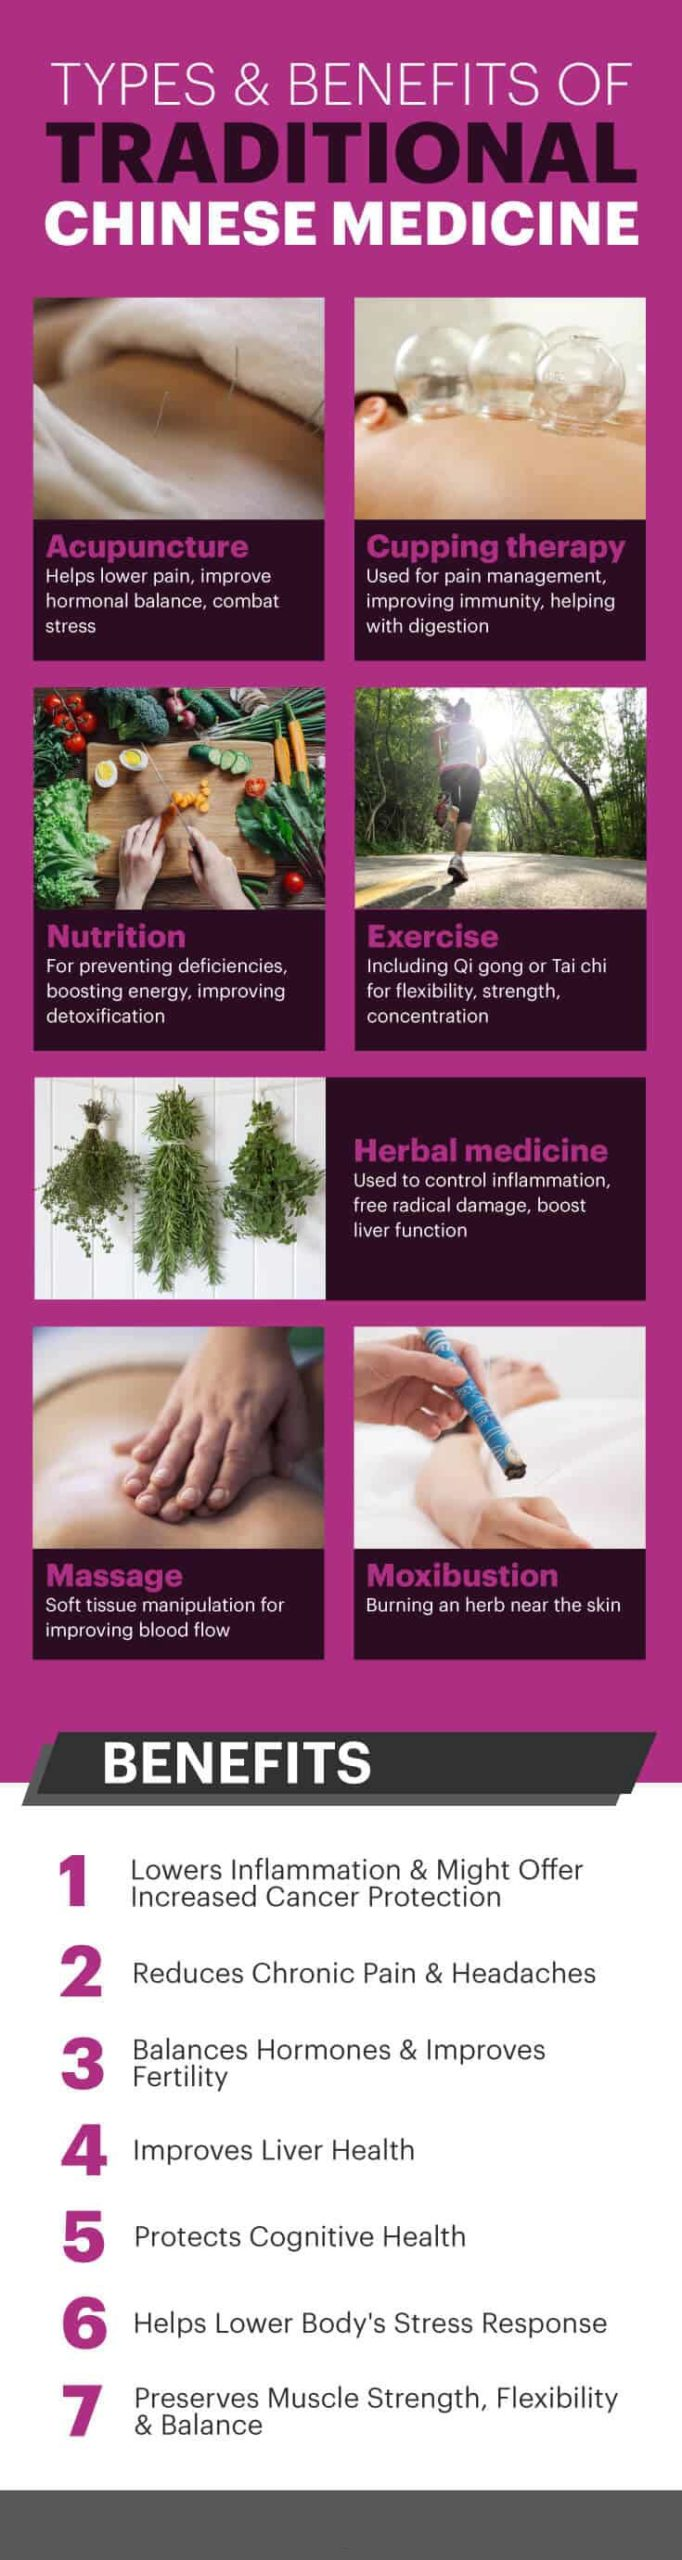 Traditional Chinese Medicine types and benefits - MKexpress.net